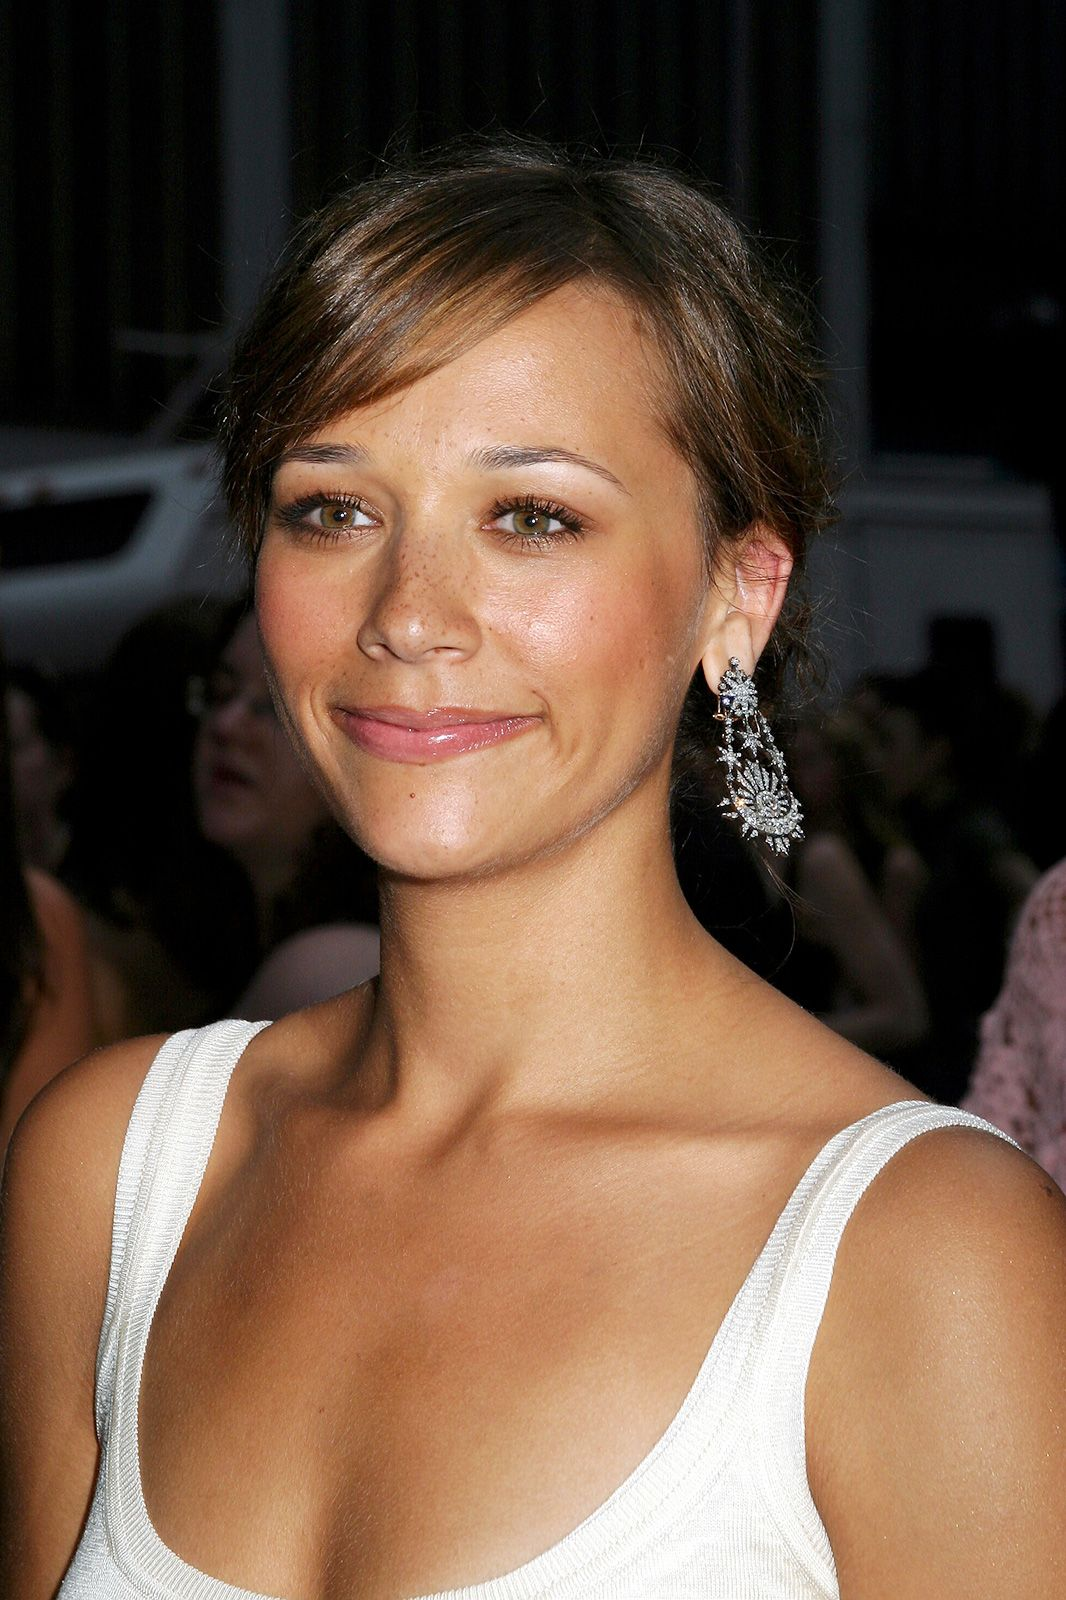 Rashida Jones nude (63 photos), Is a cute Feet, Instagram, bra 2015